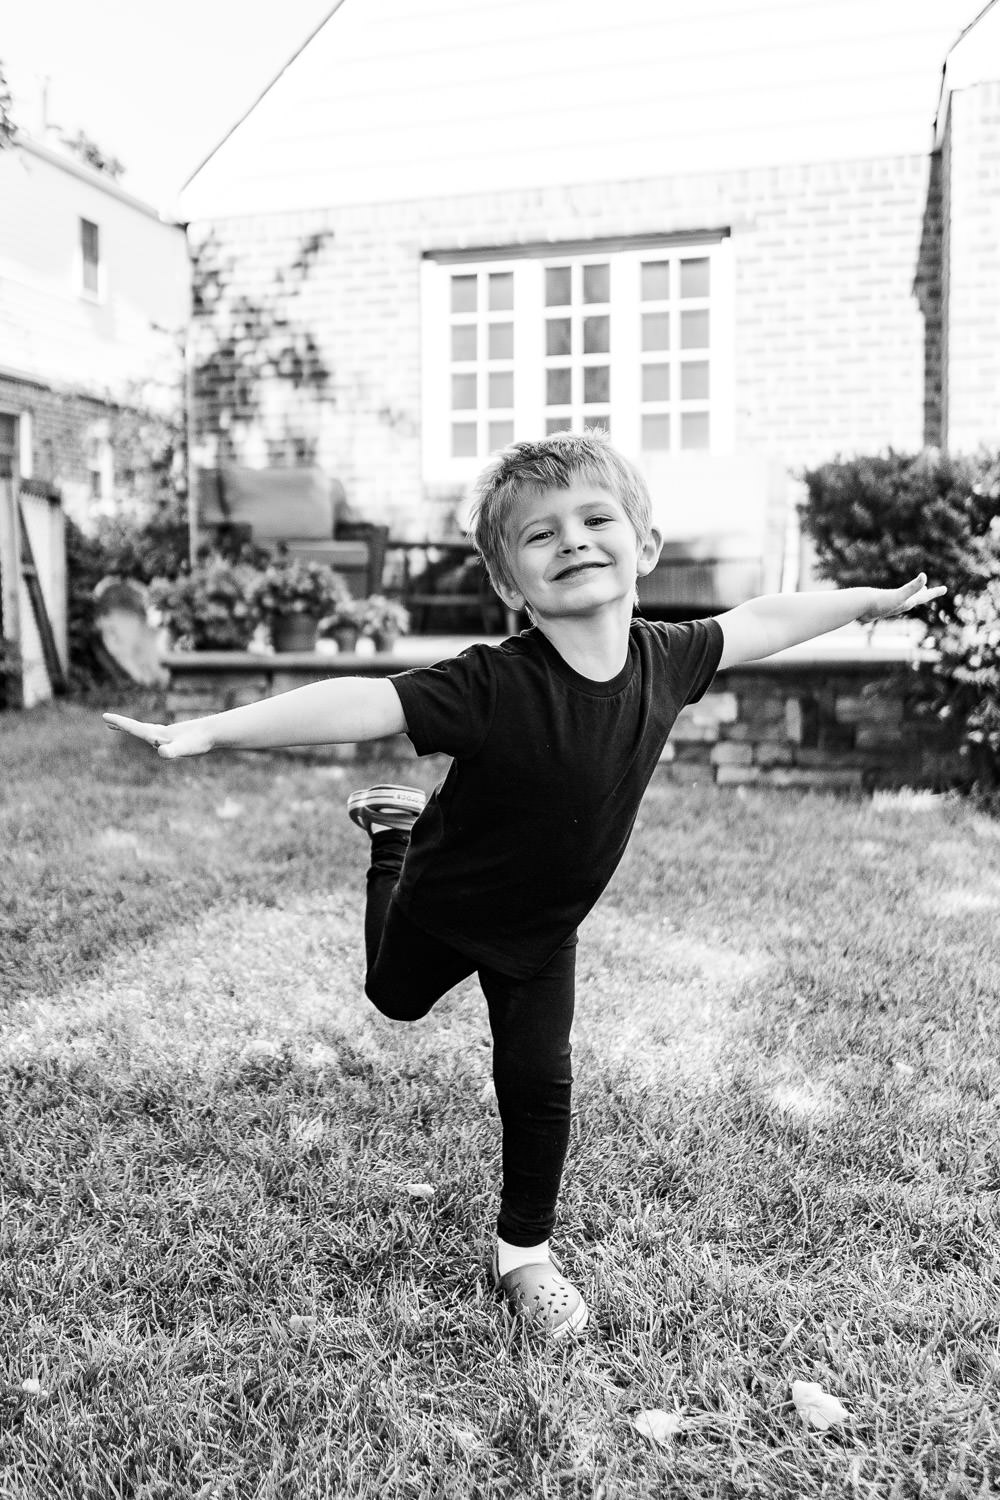 A little boy does ballet on his front lawn.